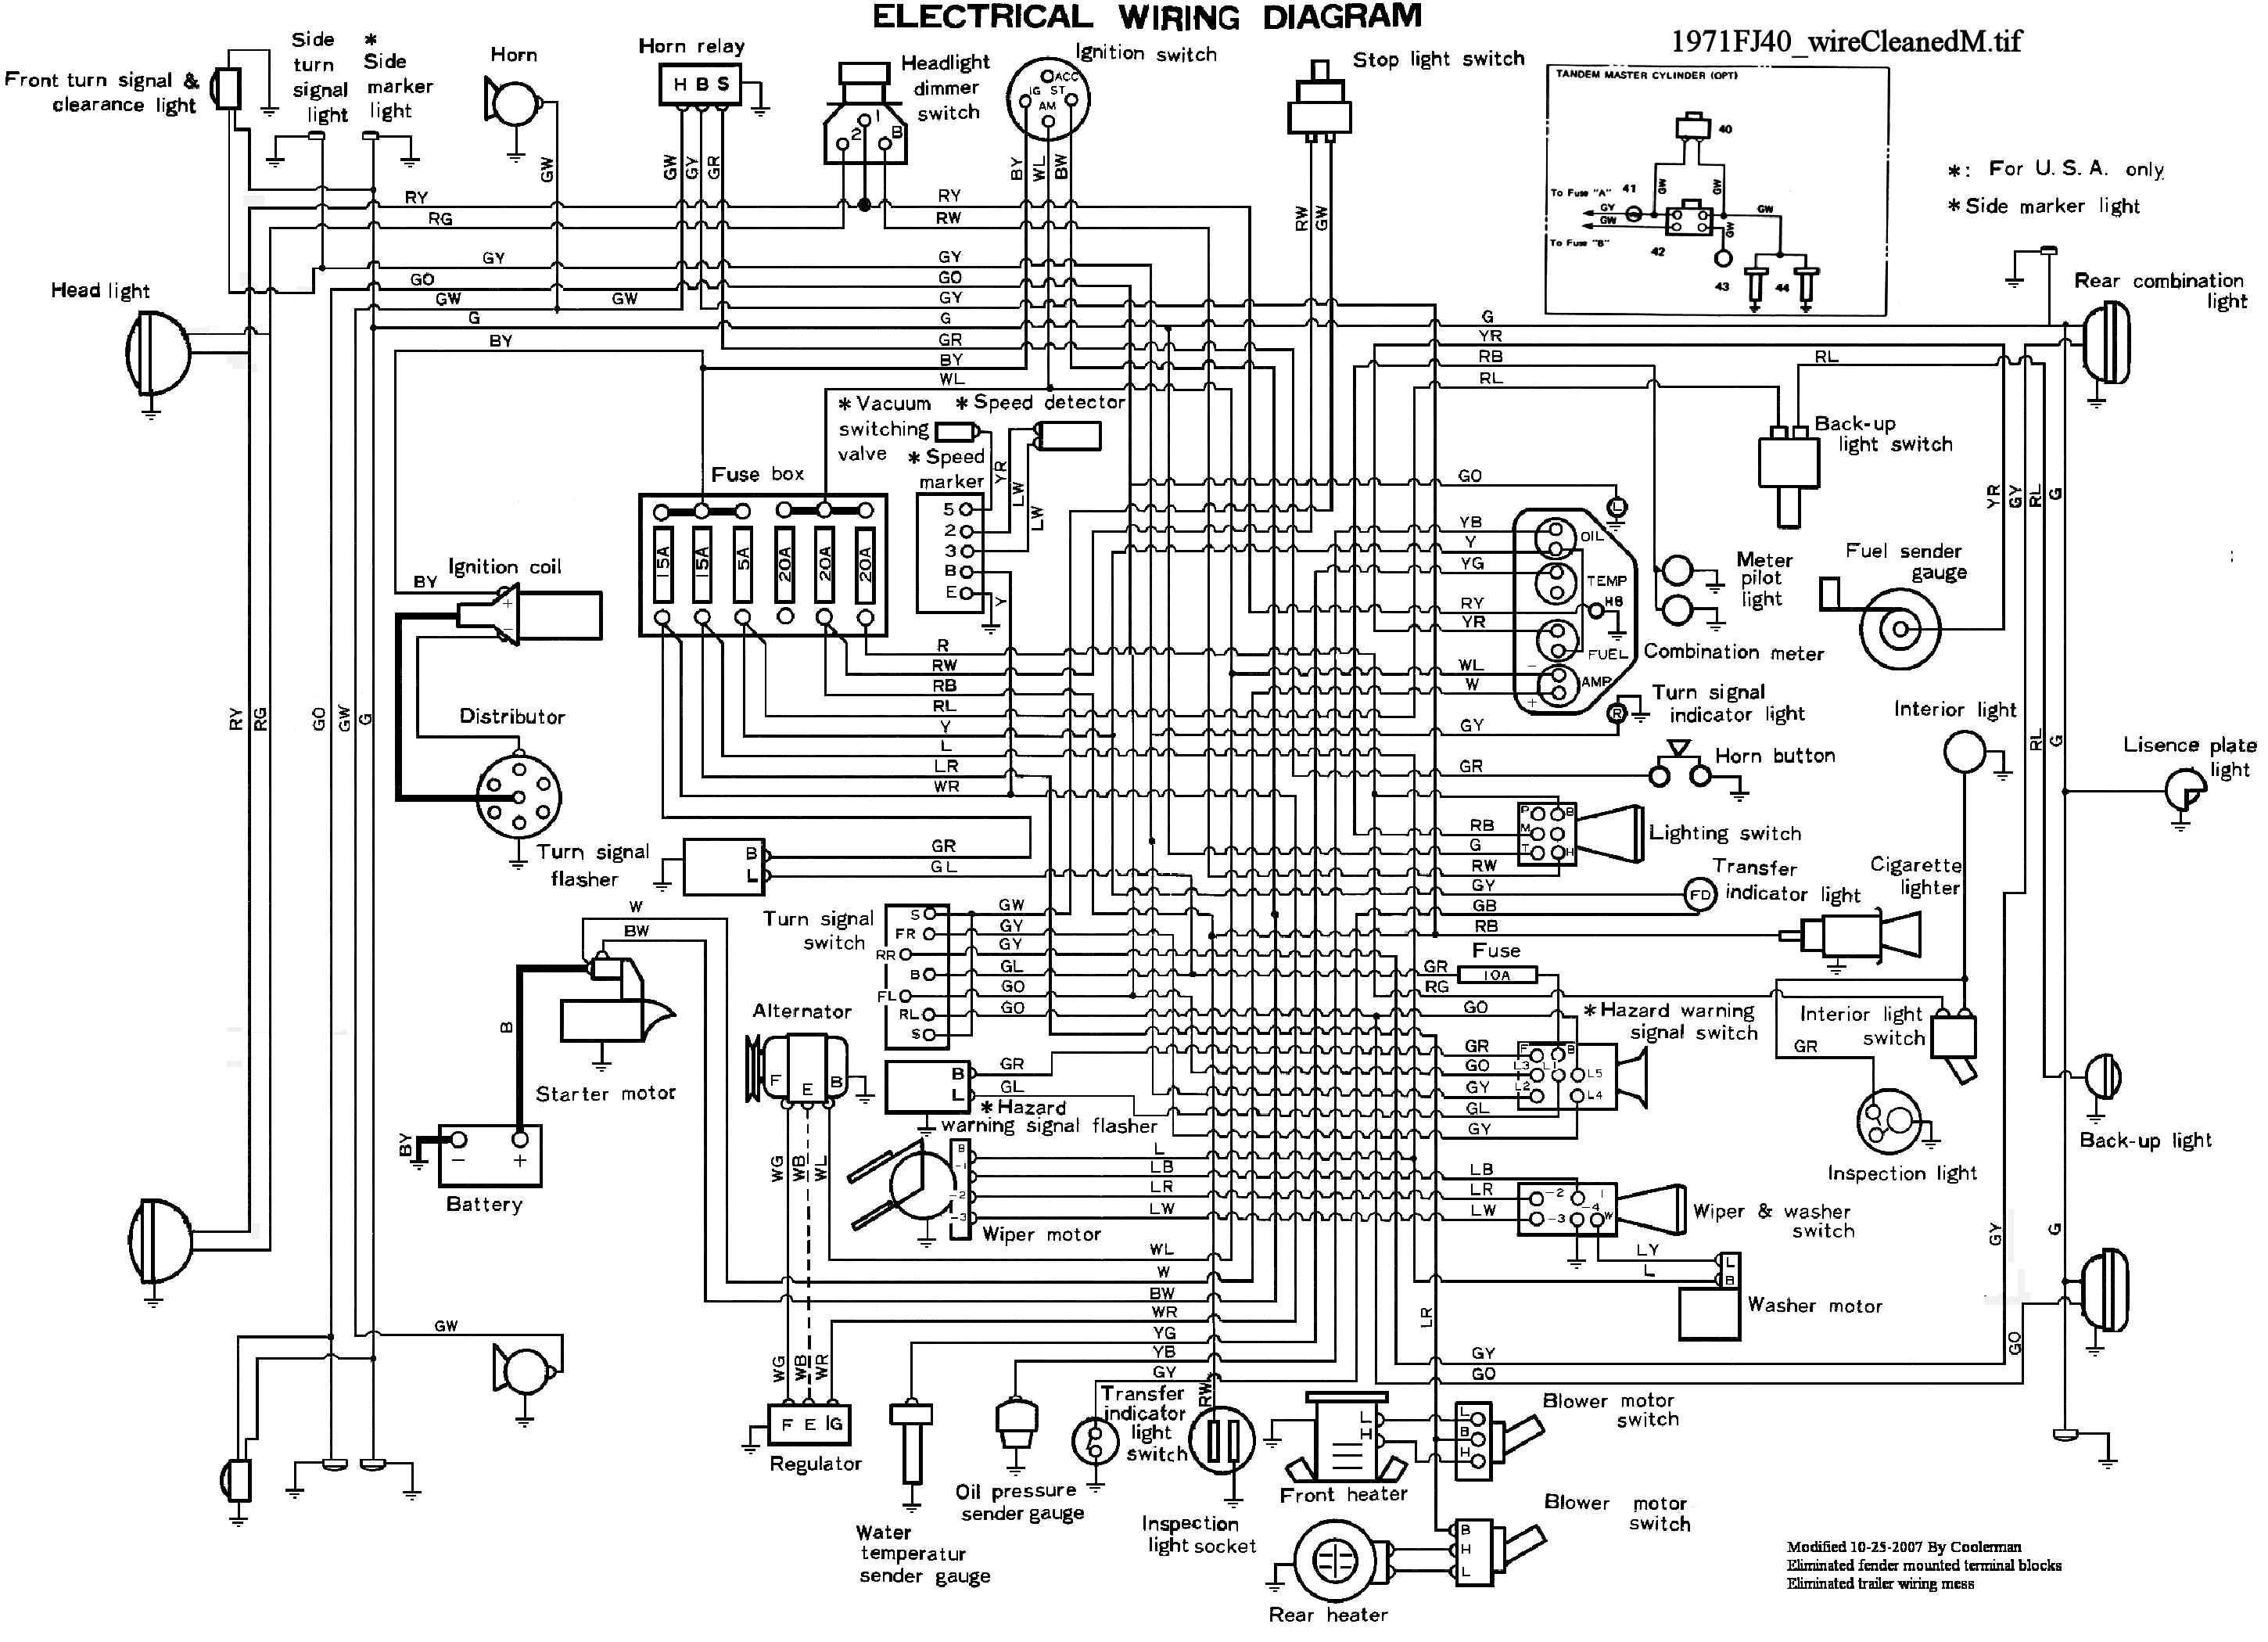 wiring diagram toyota landcruiser 79 series wiring diagram third level 1995 Gmc Safari Wiring Diagram toyota land cruiser wiring harness wiring diagram third level toyota land cruiser 79 series 1995 wiring diagram toyota landcruiser 79 series